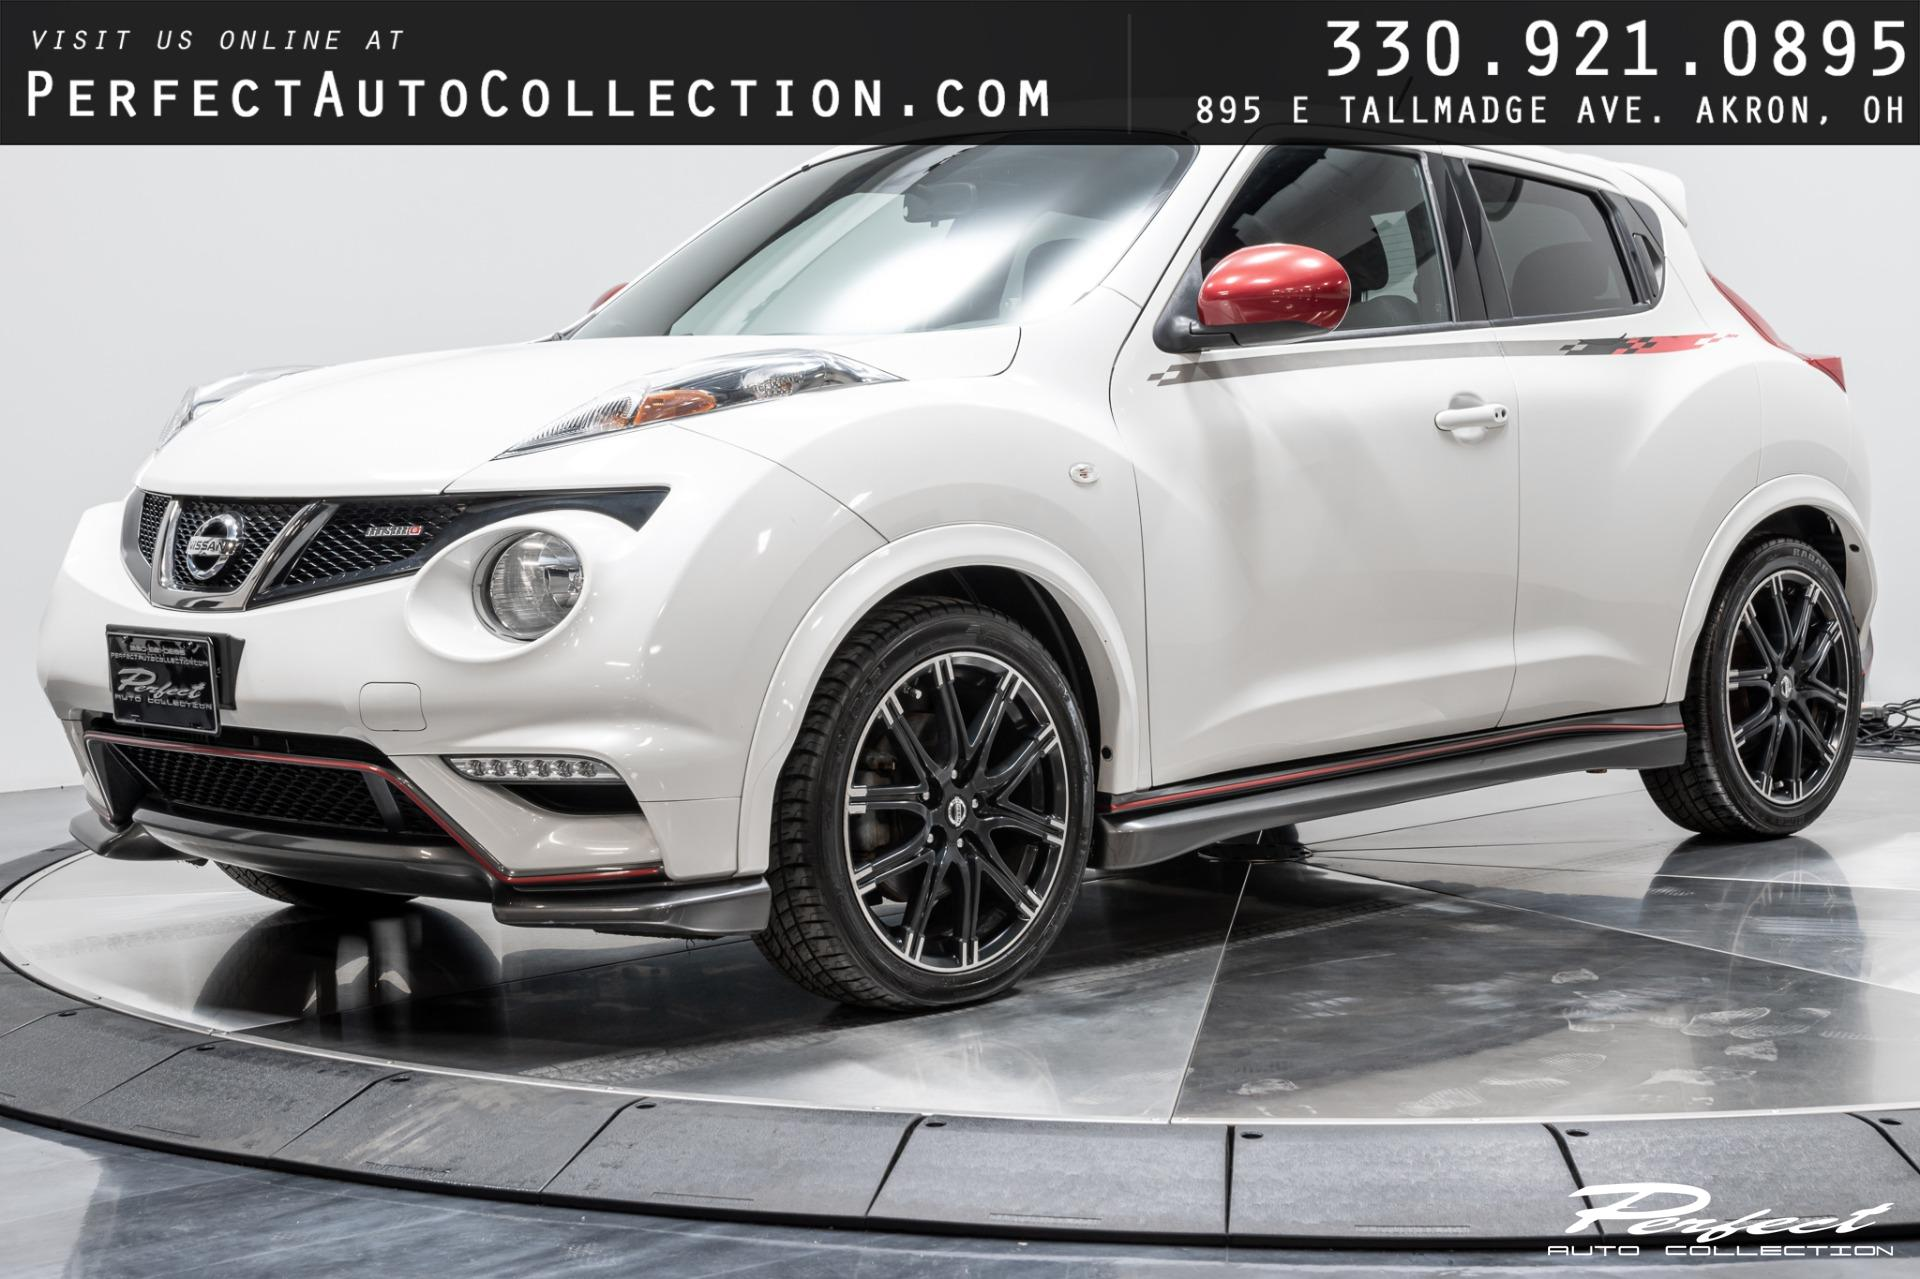 Used 2013 Nissan JUKE NISMO for sale $12,793 at Perfect Auto Collection in Akron OH 44310 1